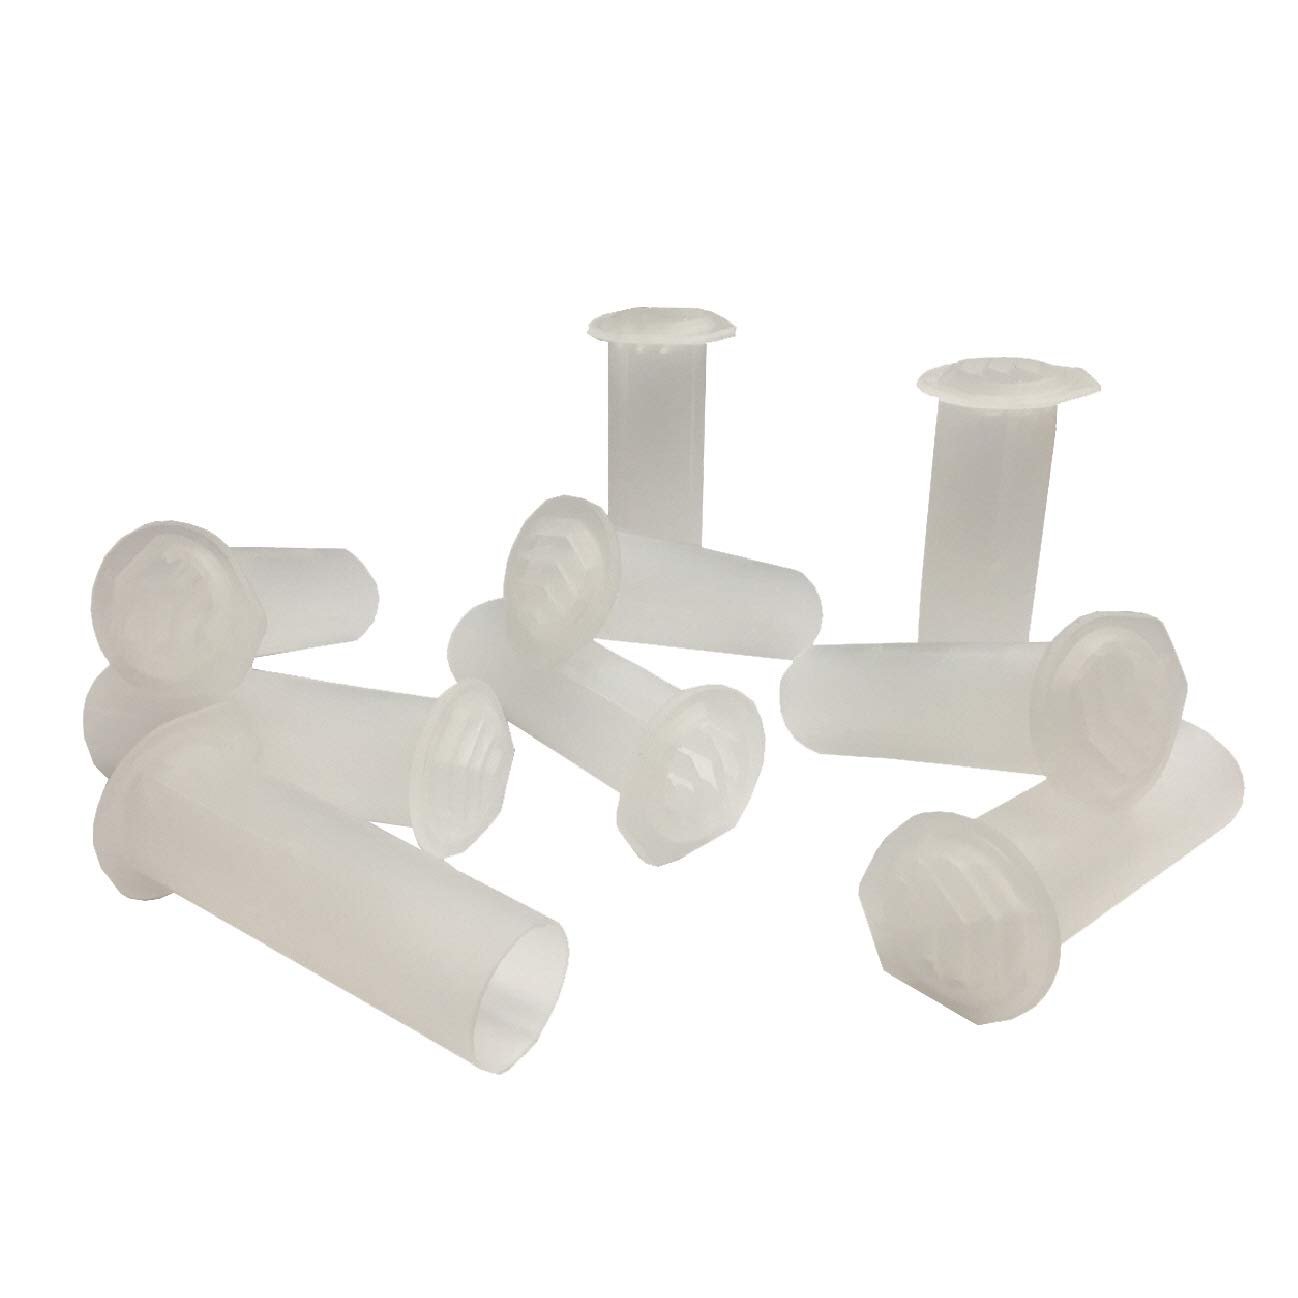 50 x Natural Clear Drill Weep Vents Round Venting System Cavity / Retaining Walls Wall Manthorpe